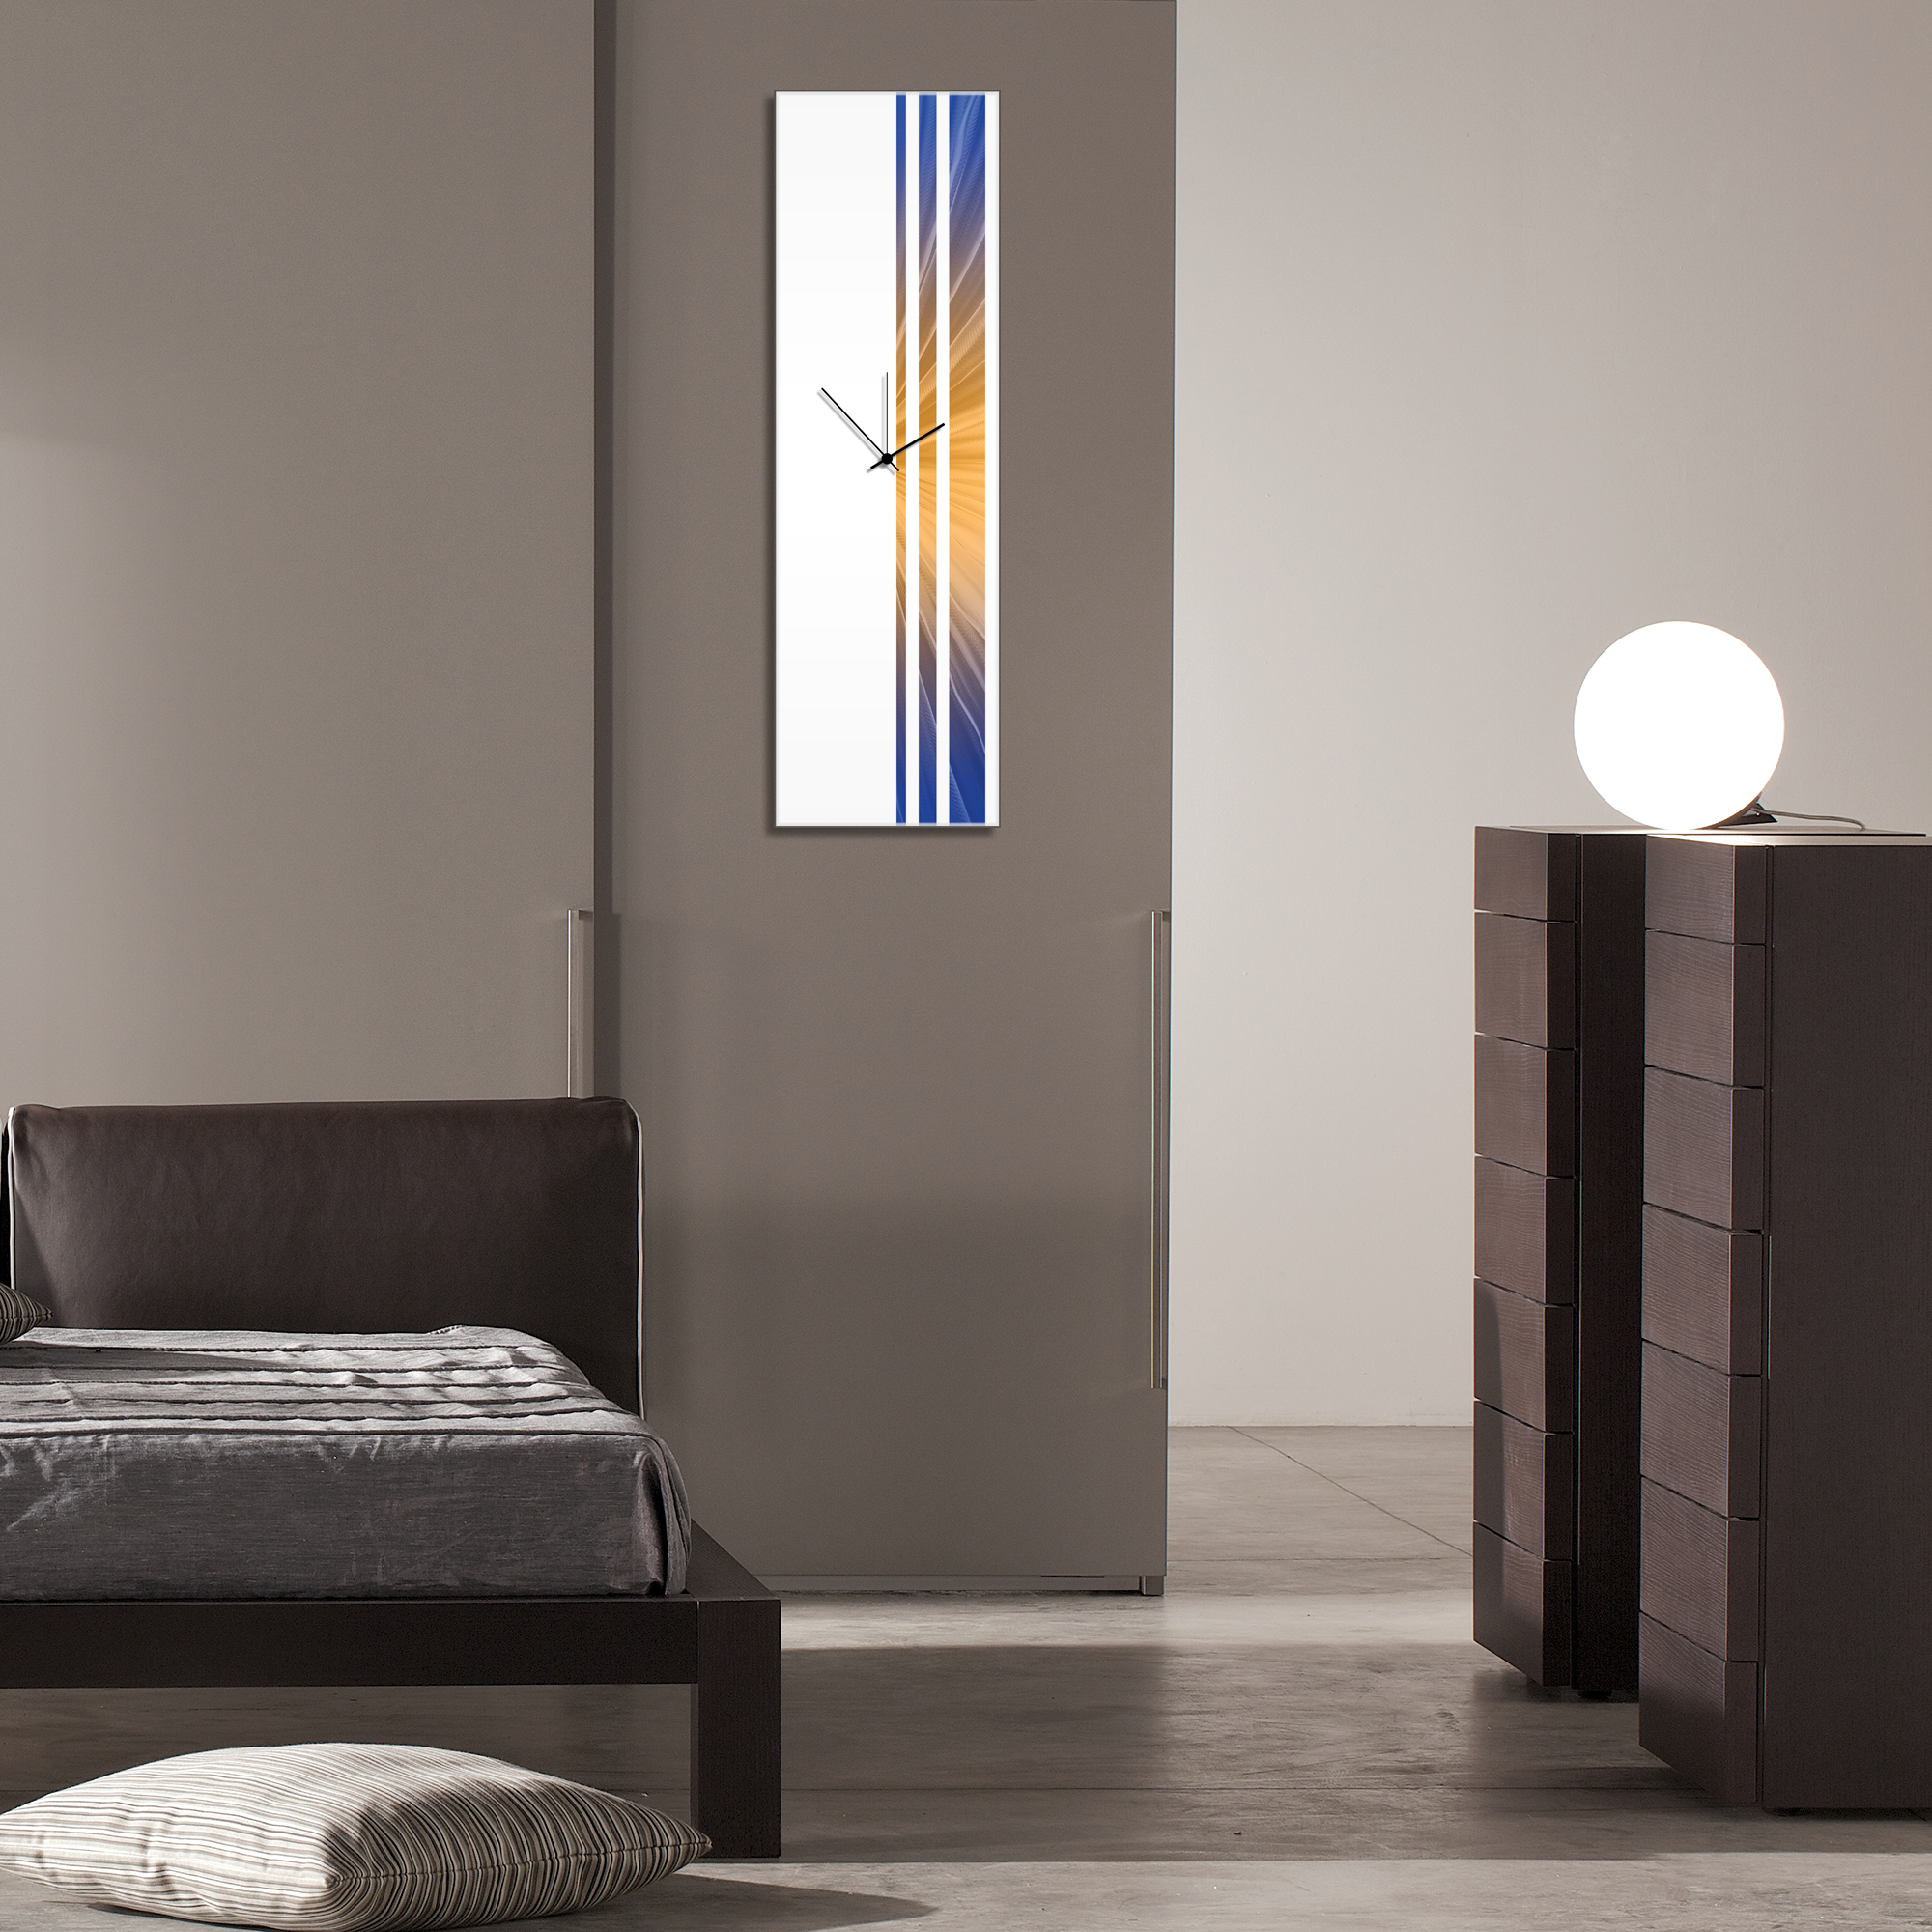 Candlelight Triple Stripe Clock by Adam Schwoeppe Large Modern Clock on Acrylic - Alternate View 3